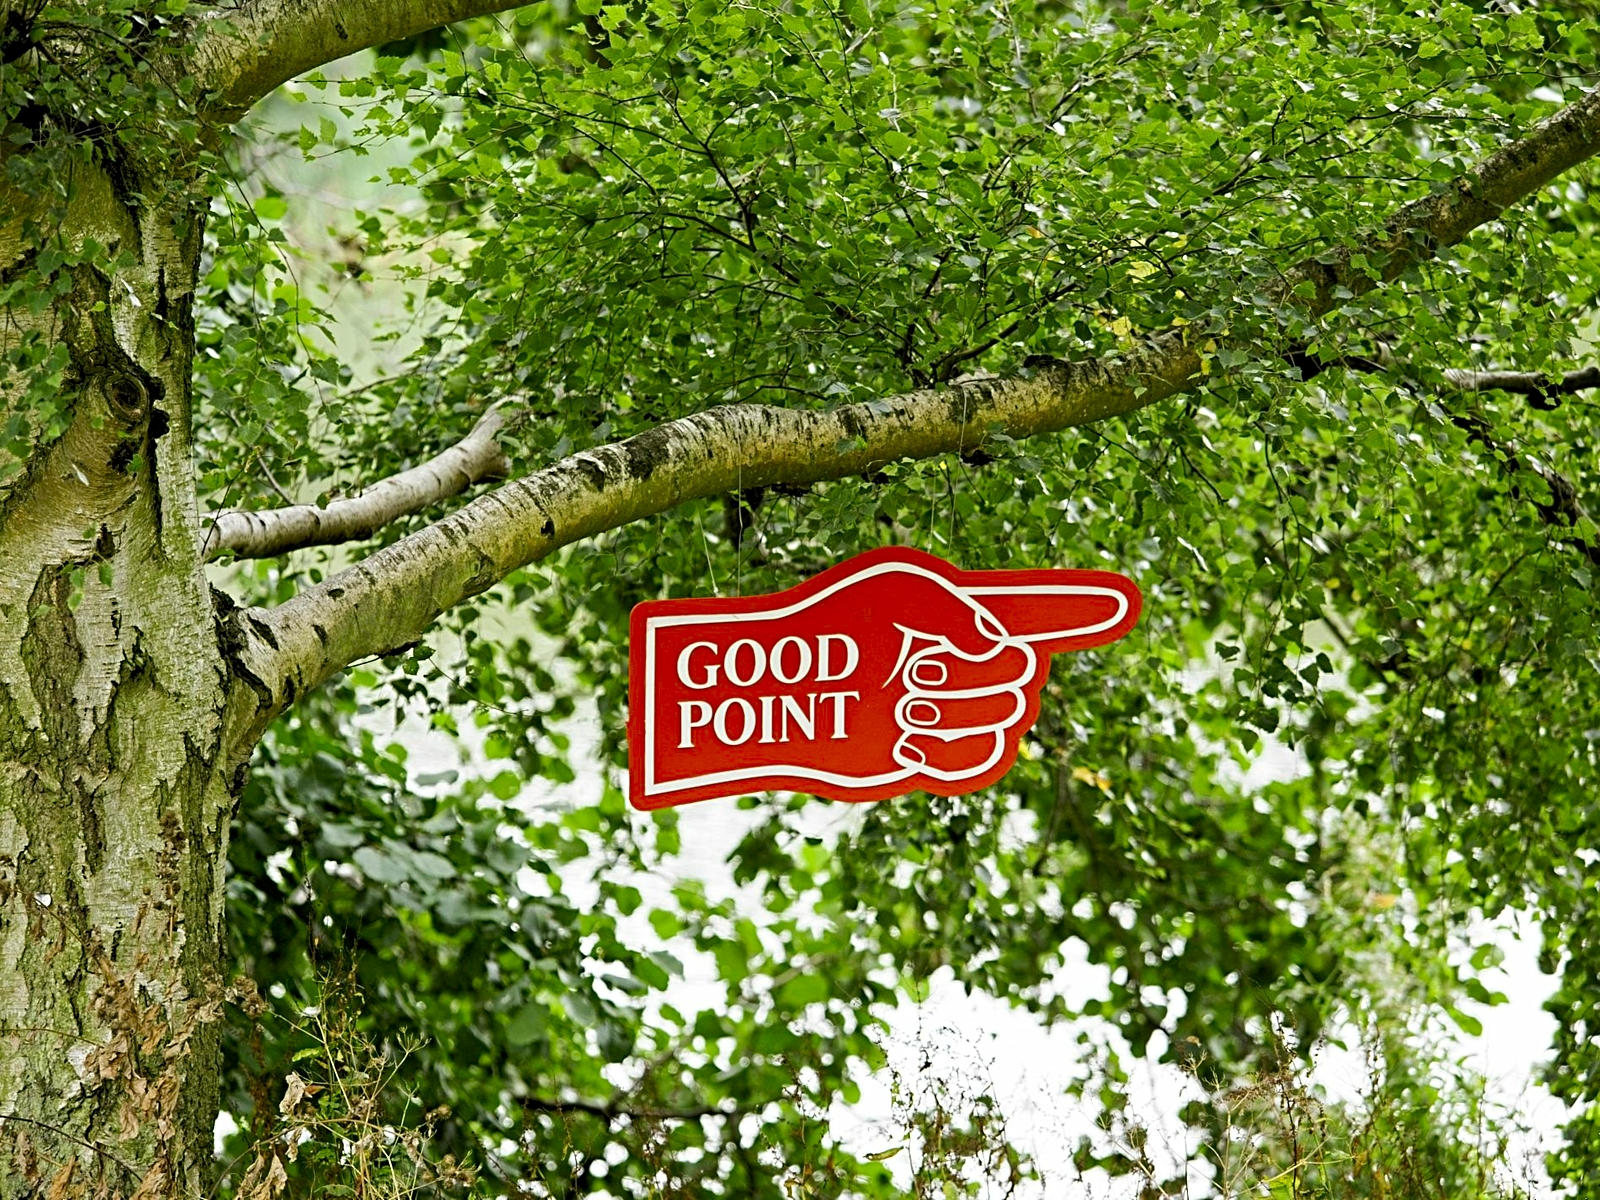 Photo of a tree with a large outstretched branch. Hanging from the branch is a red sign in the shape of a hand with it's index finger outstretched pointing to the right and the words